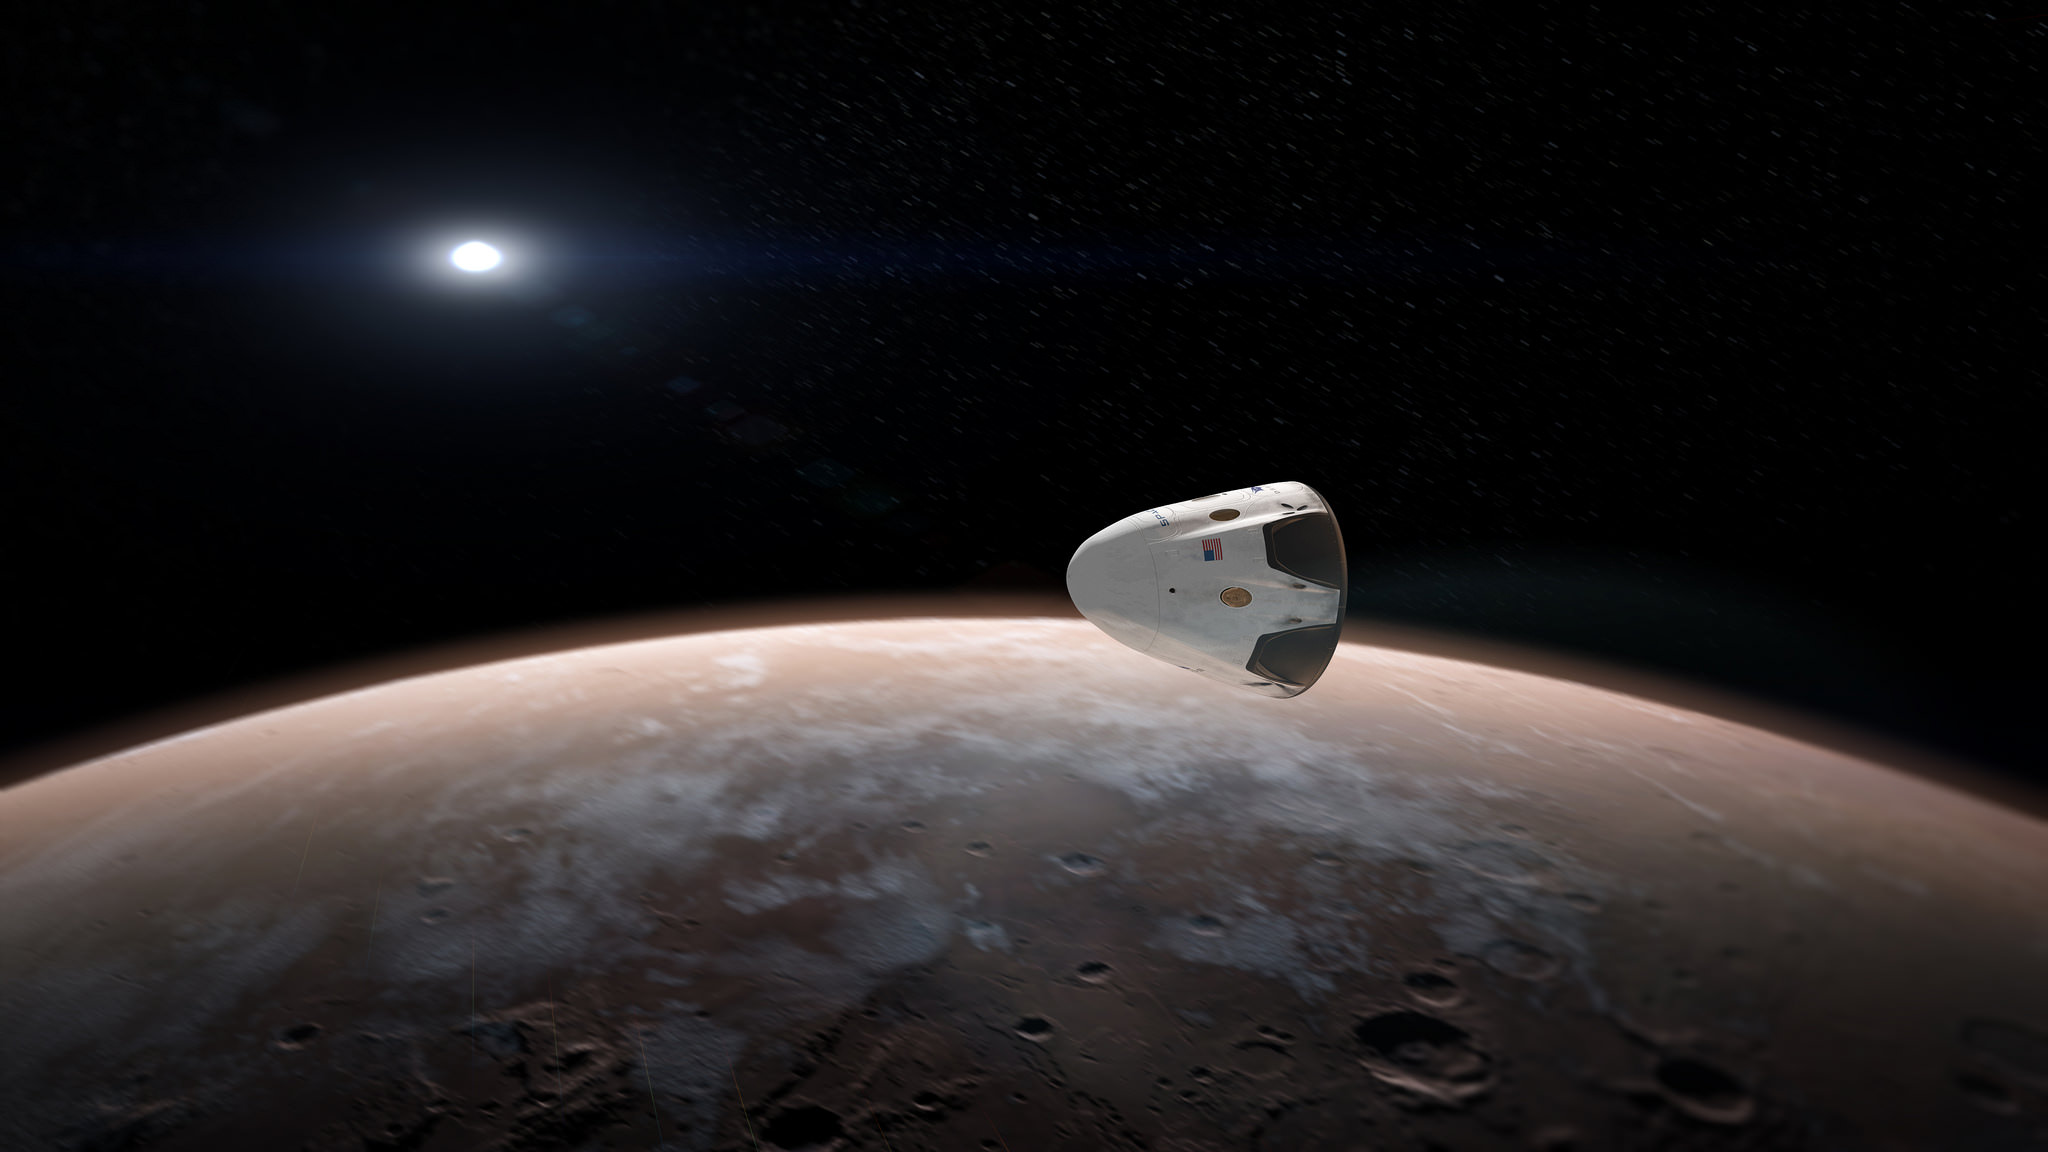 Artists concept for sending SpaceX Red Dragon spacecraft to Mars as early as 2018.  Credit: SpaceX